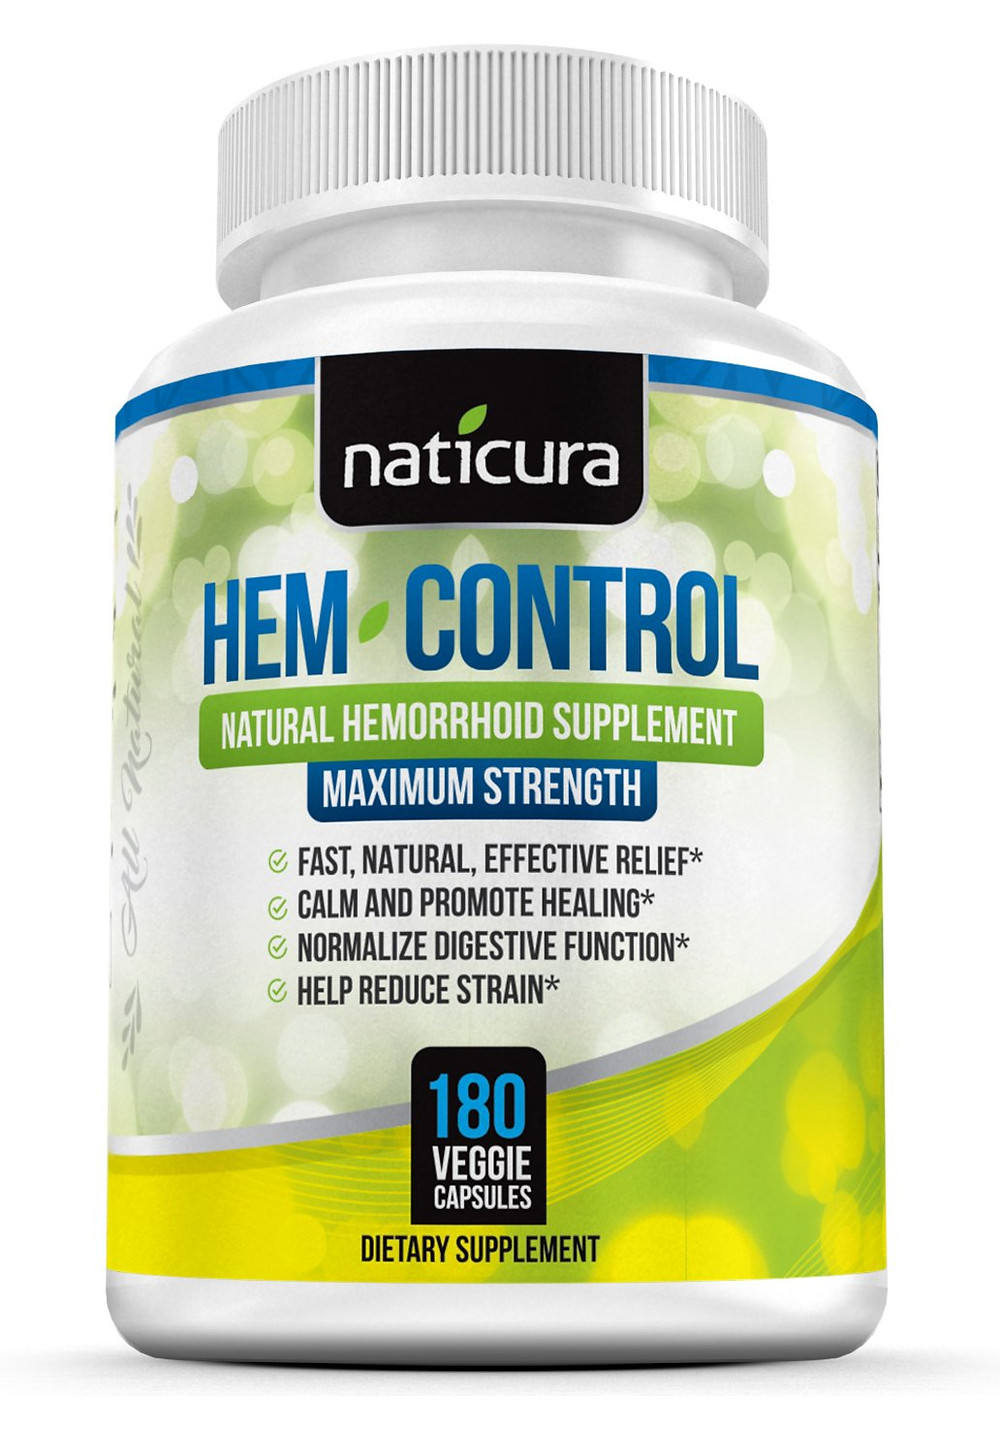 naticura hem control hemorrhoid vegan animal free veganmed